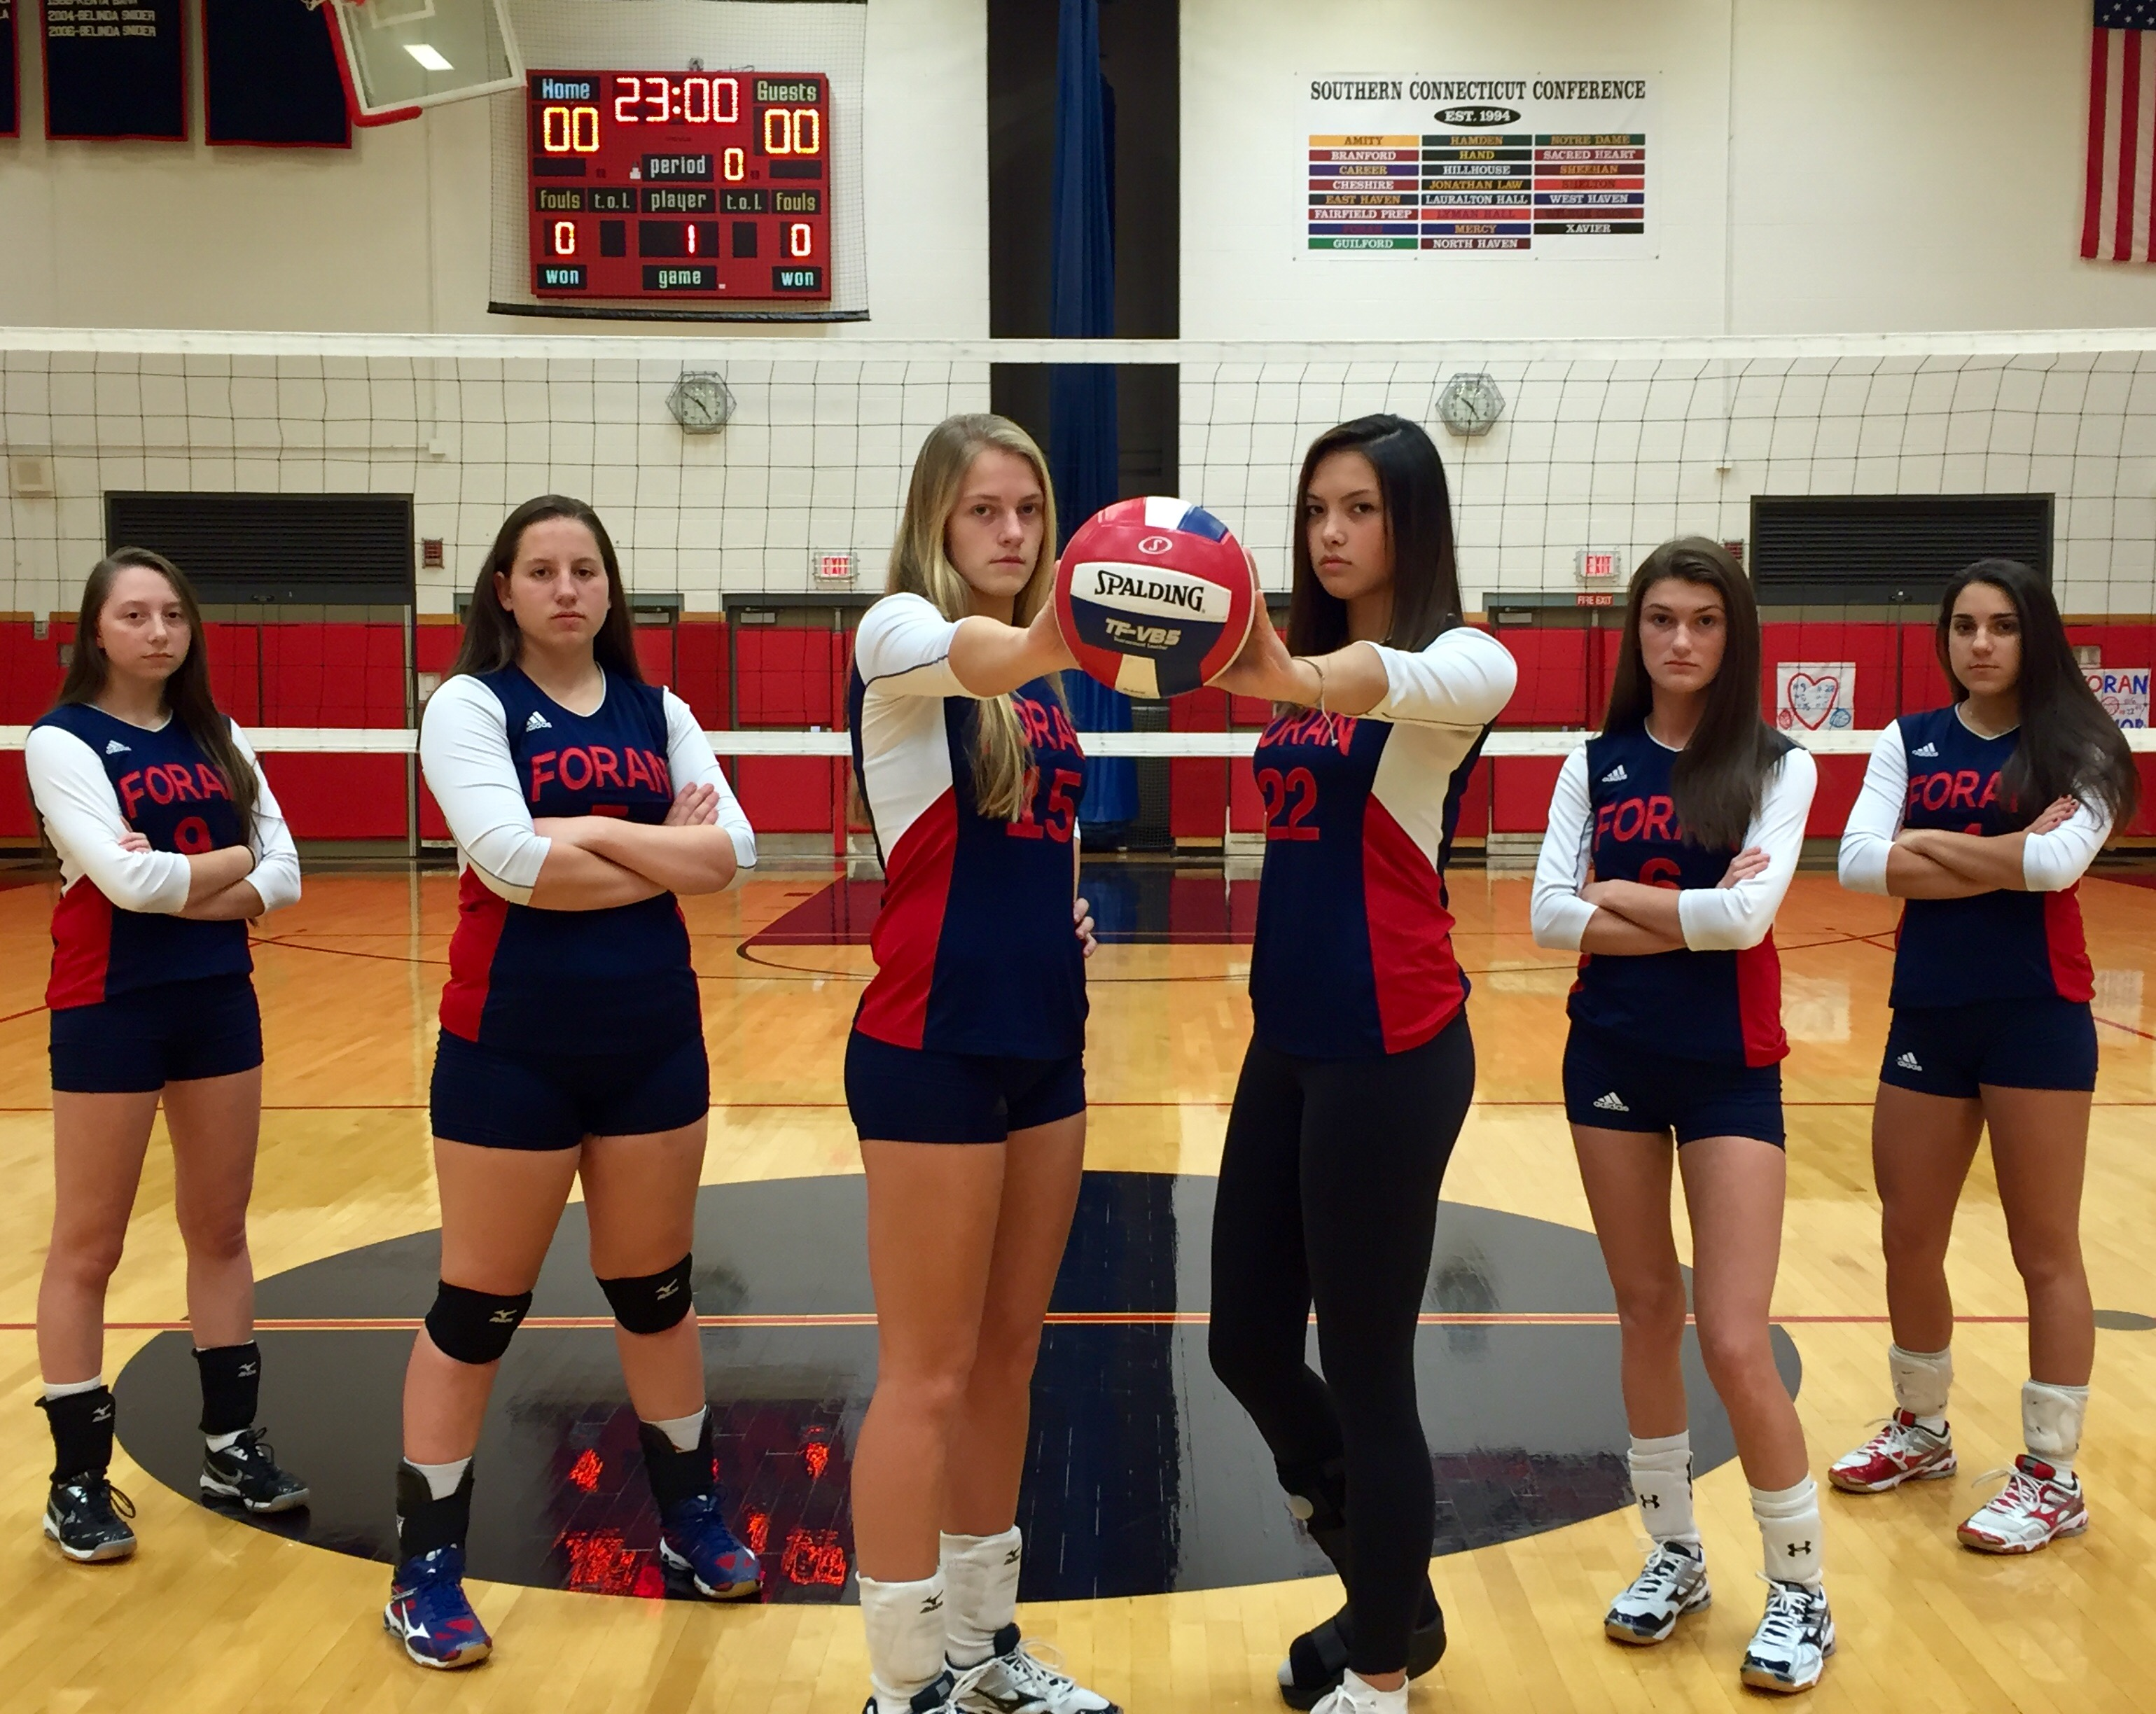 Foran Senior volleyball players